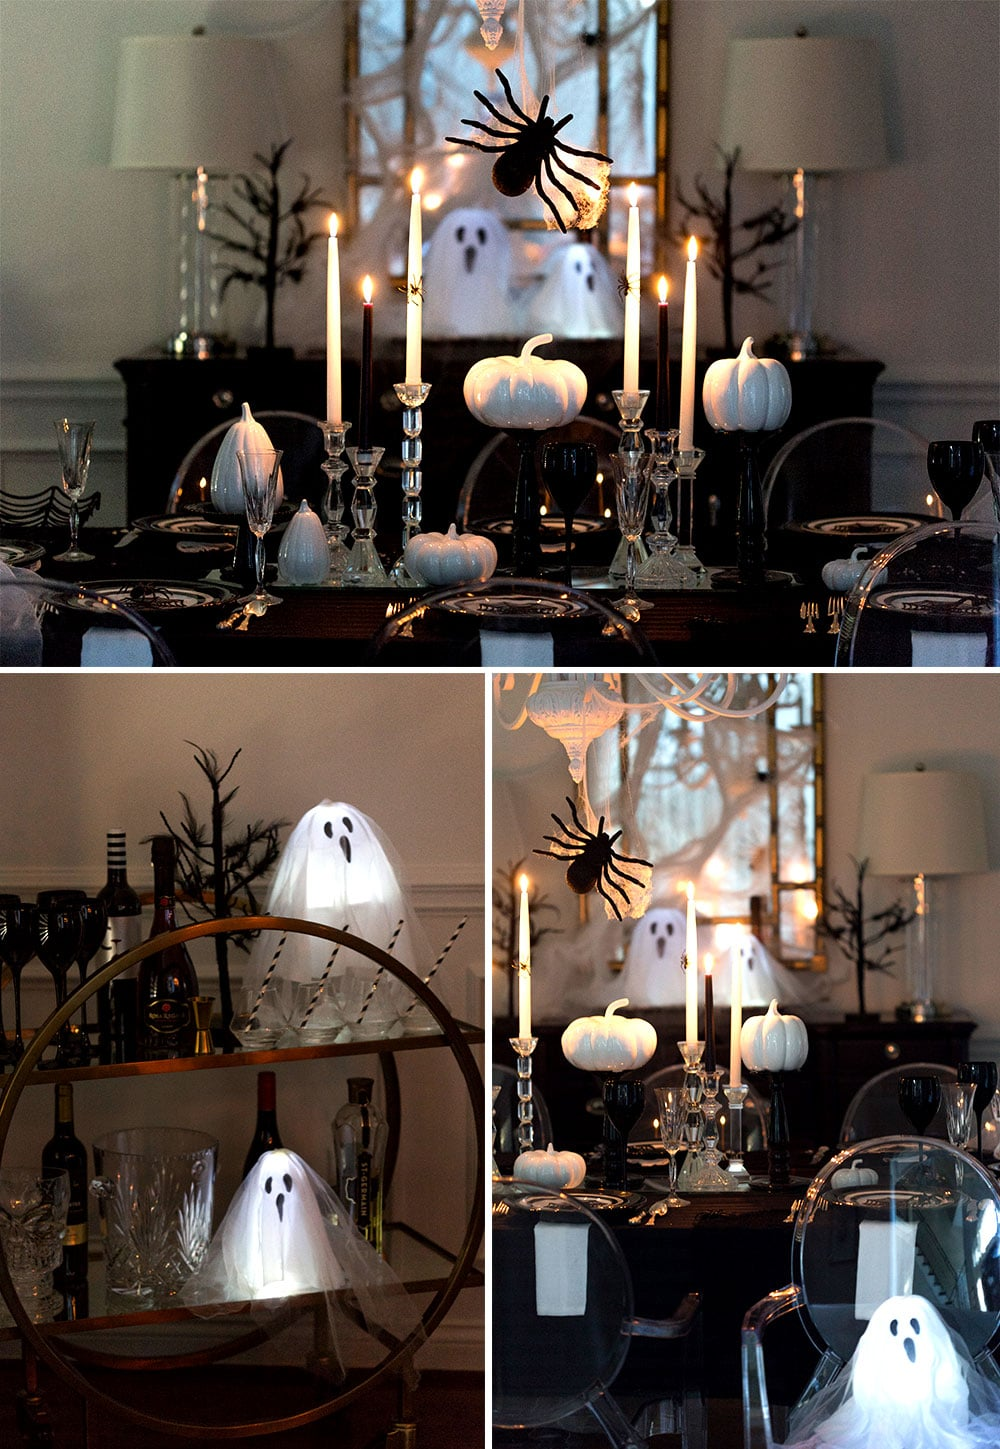 Spooky Halloween Dinner Party with Glowing Ghosts!